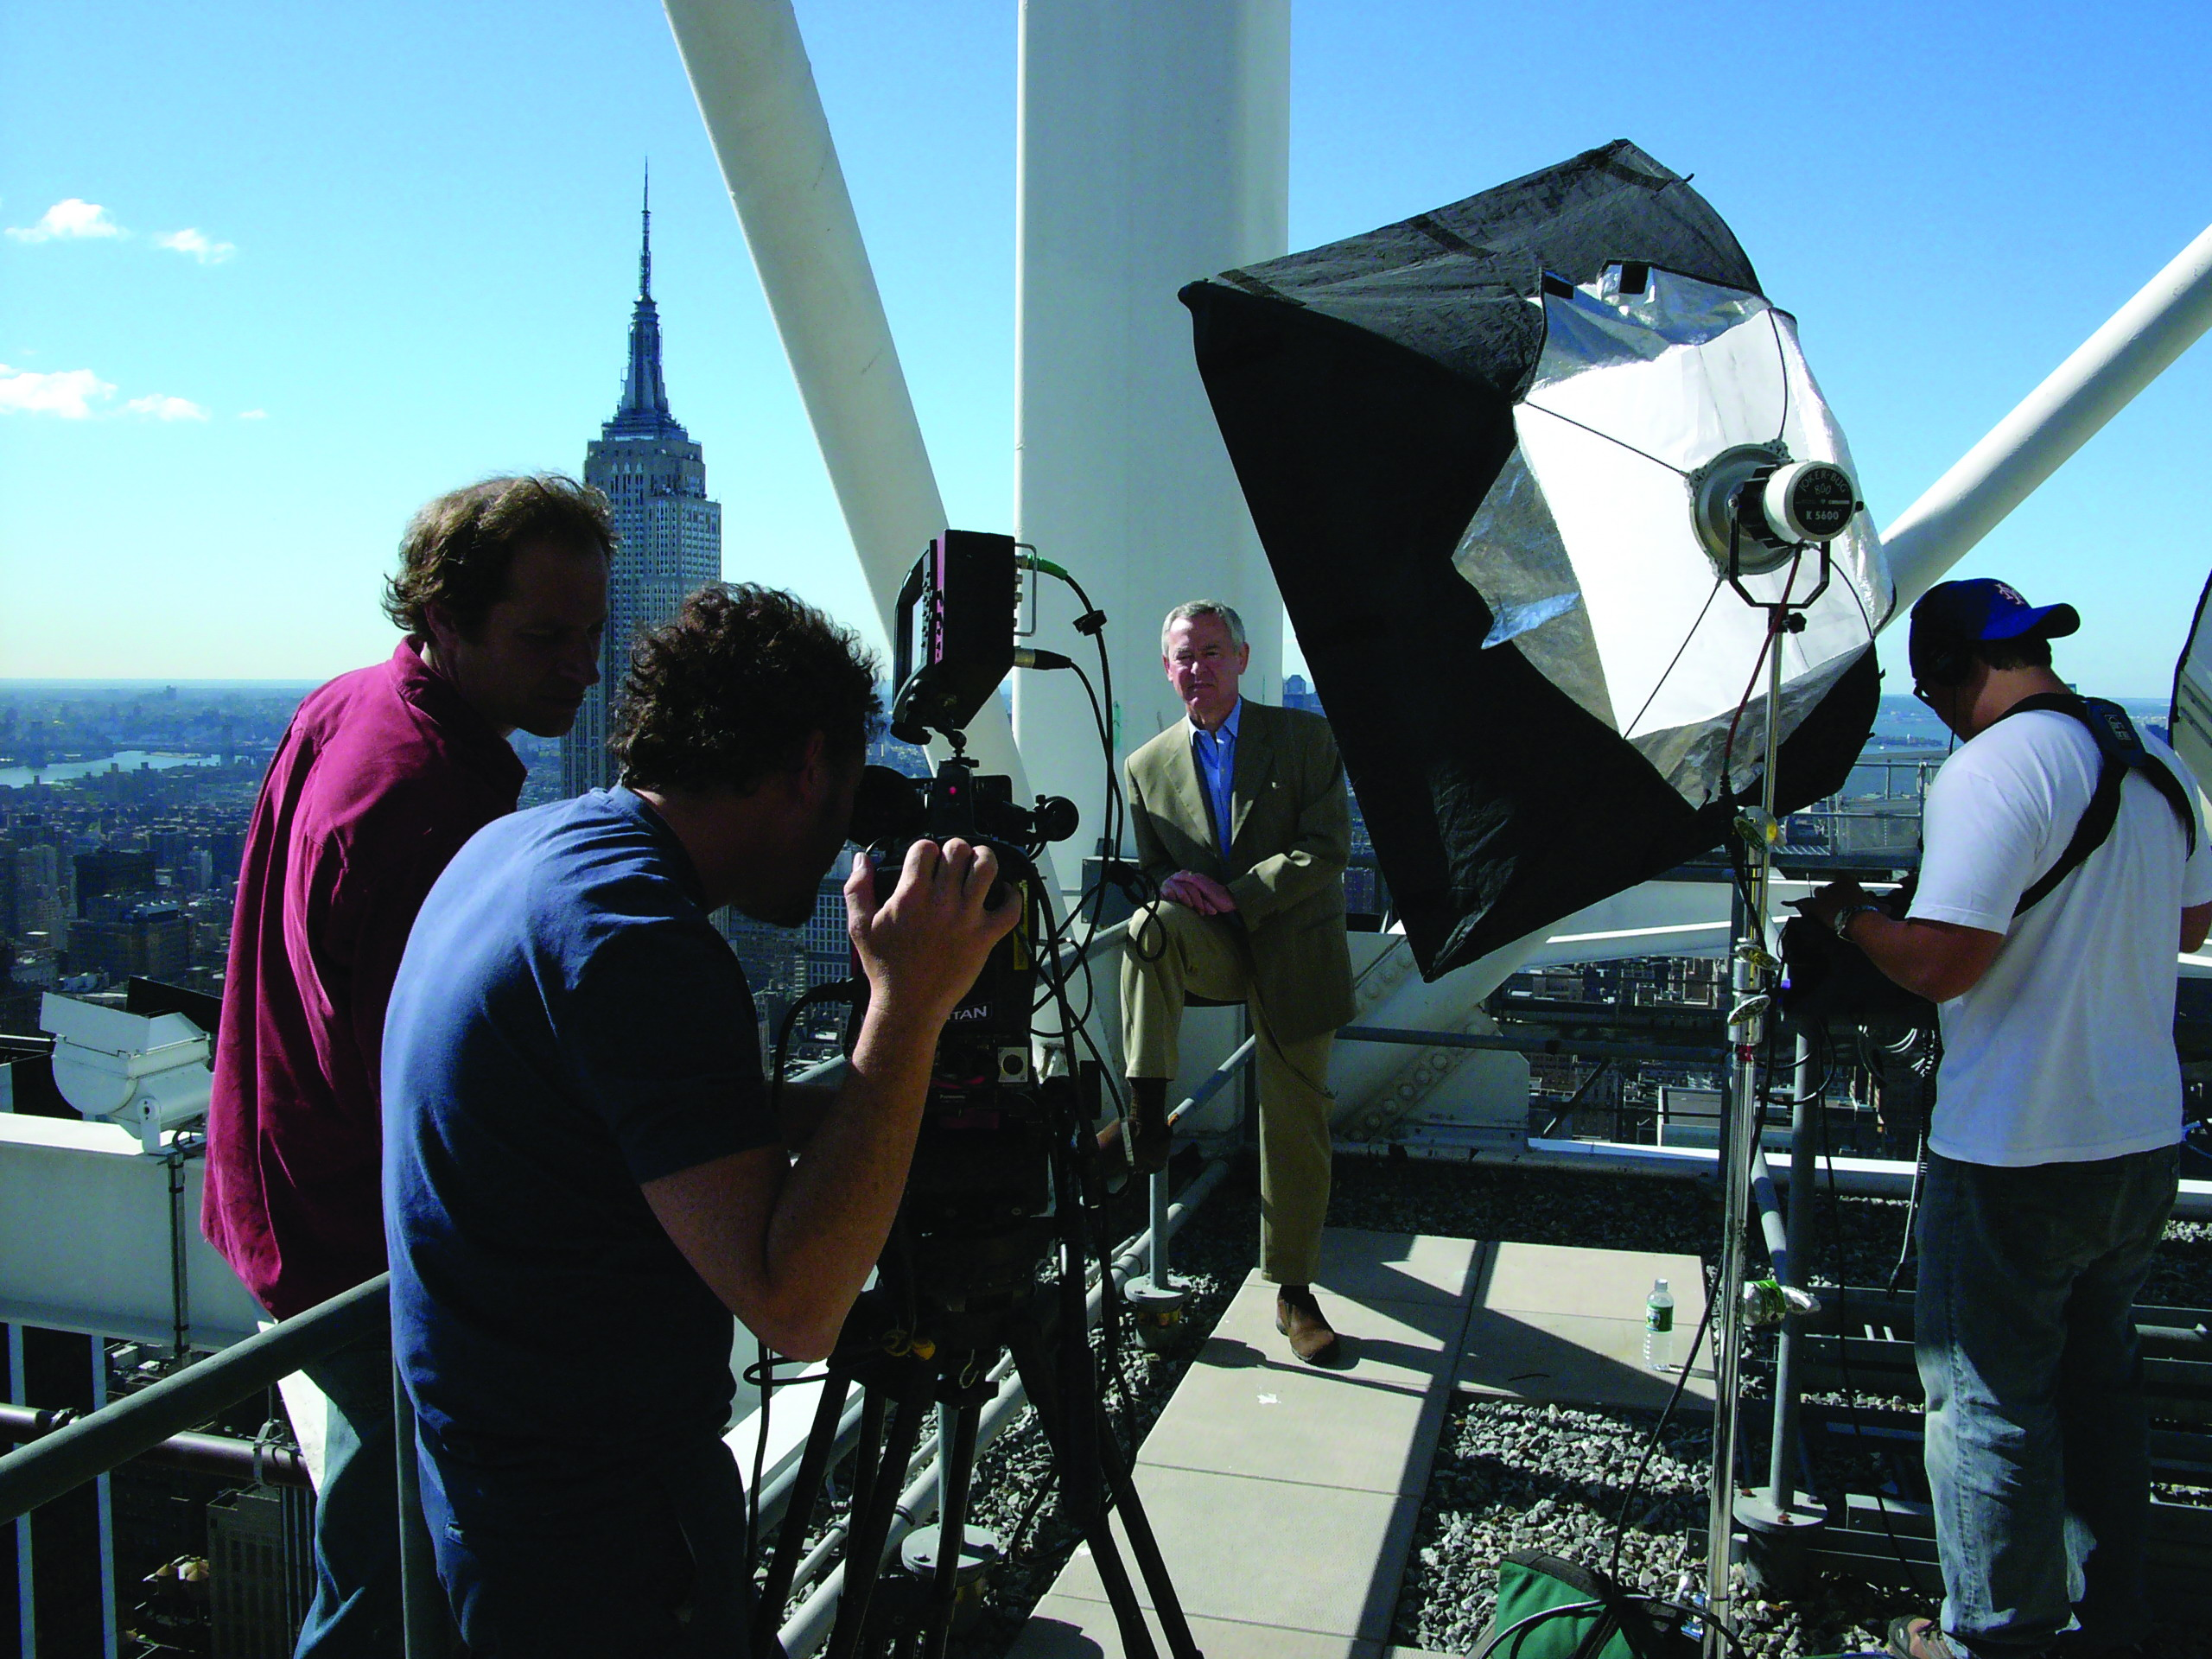 Cinematography And Film best career paths for college students